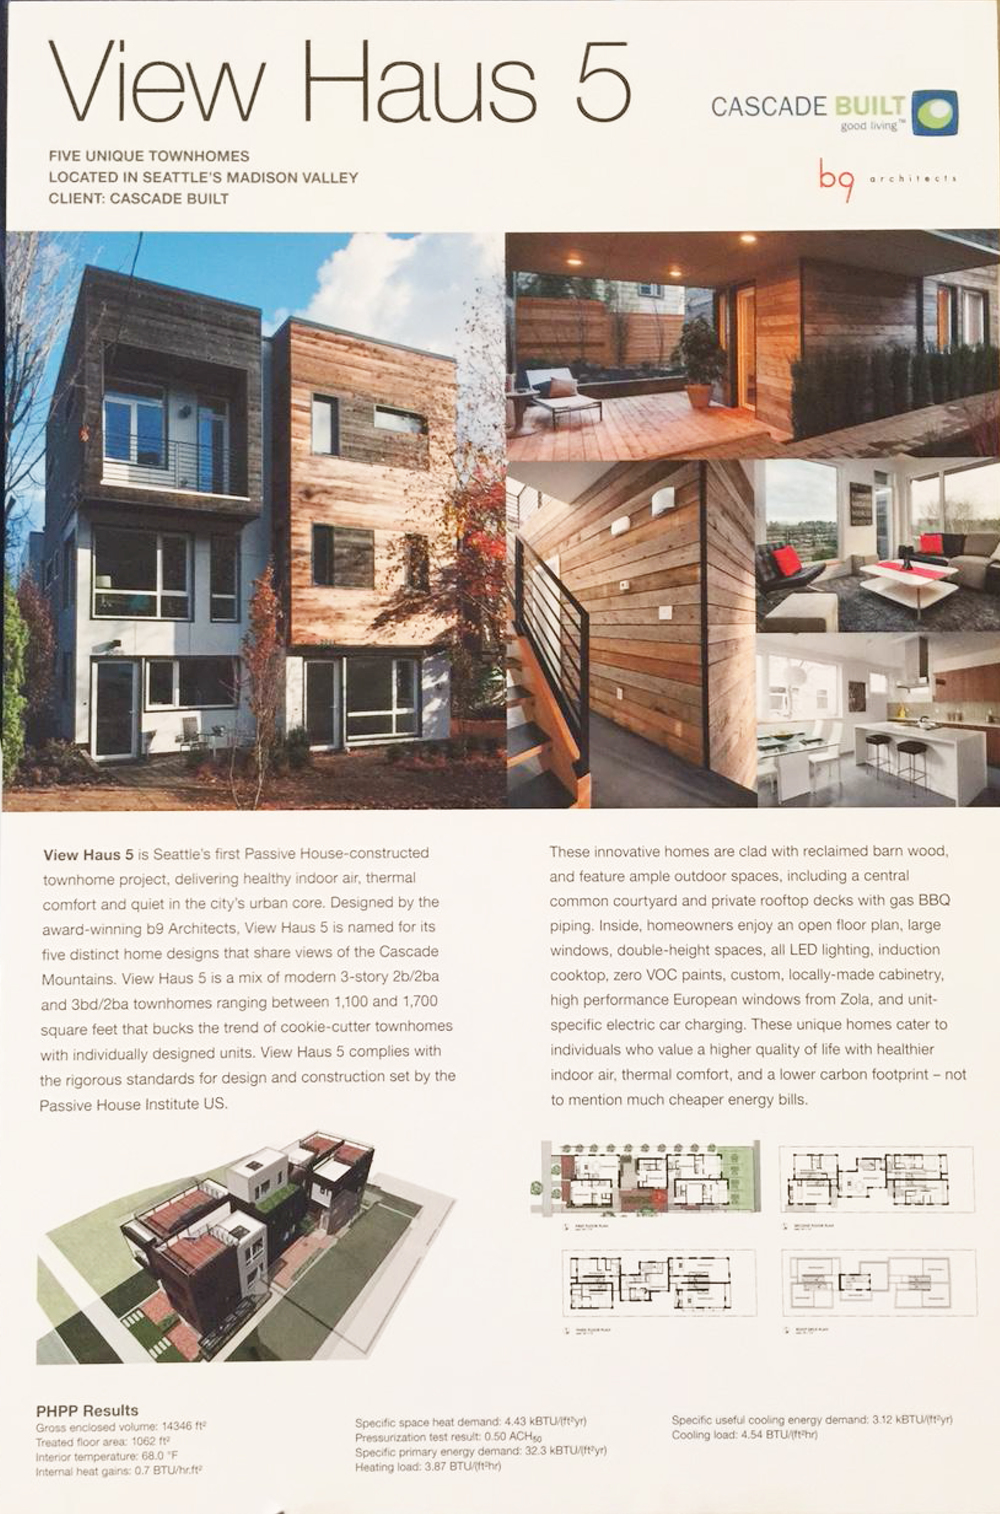 Poster presented at the North American Passive House Conference